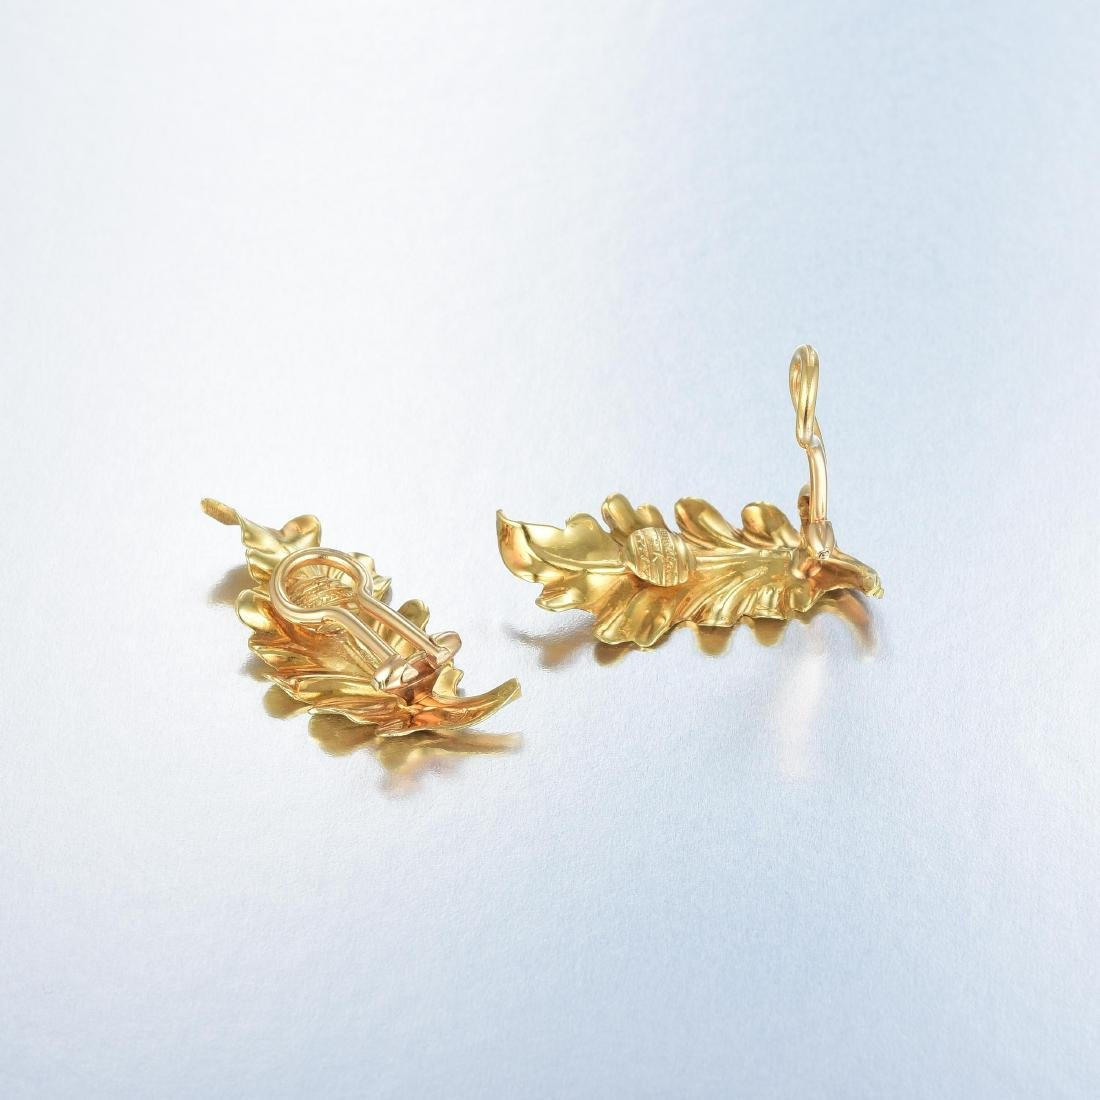 Buccellati Leaf Earrings - 2